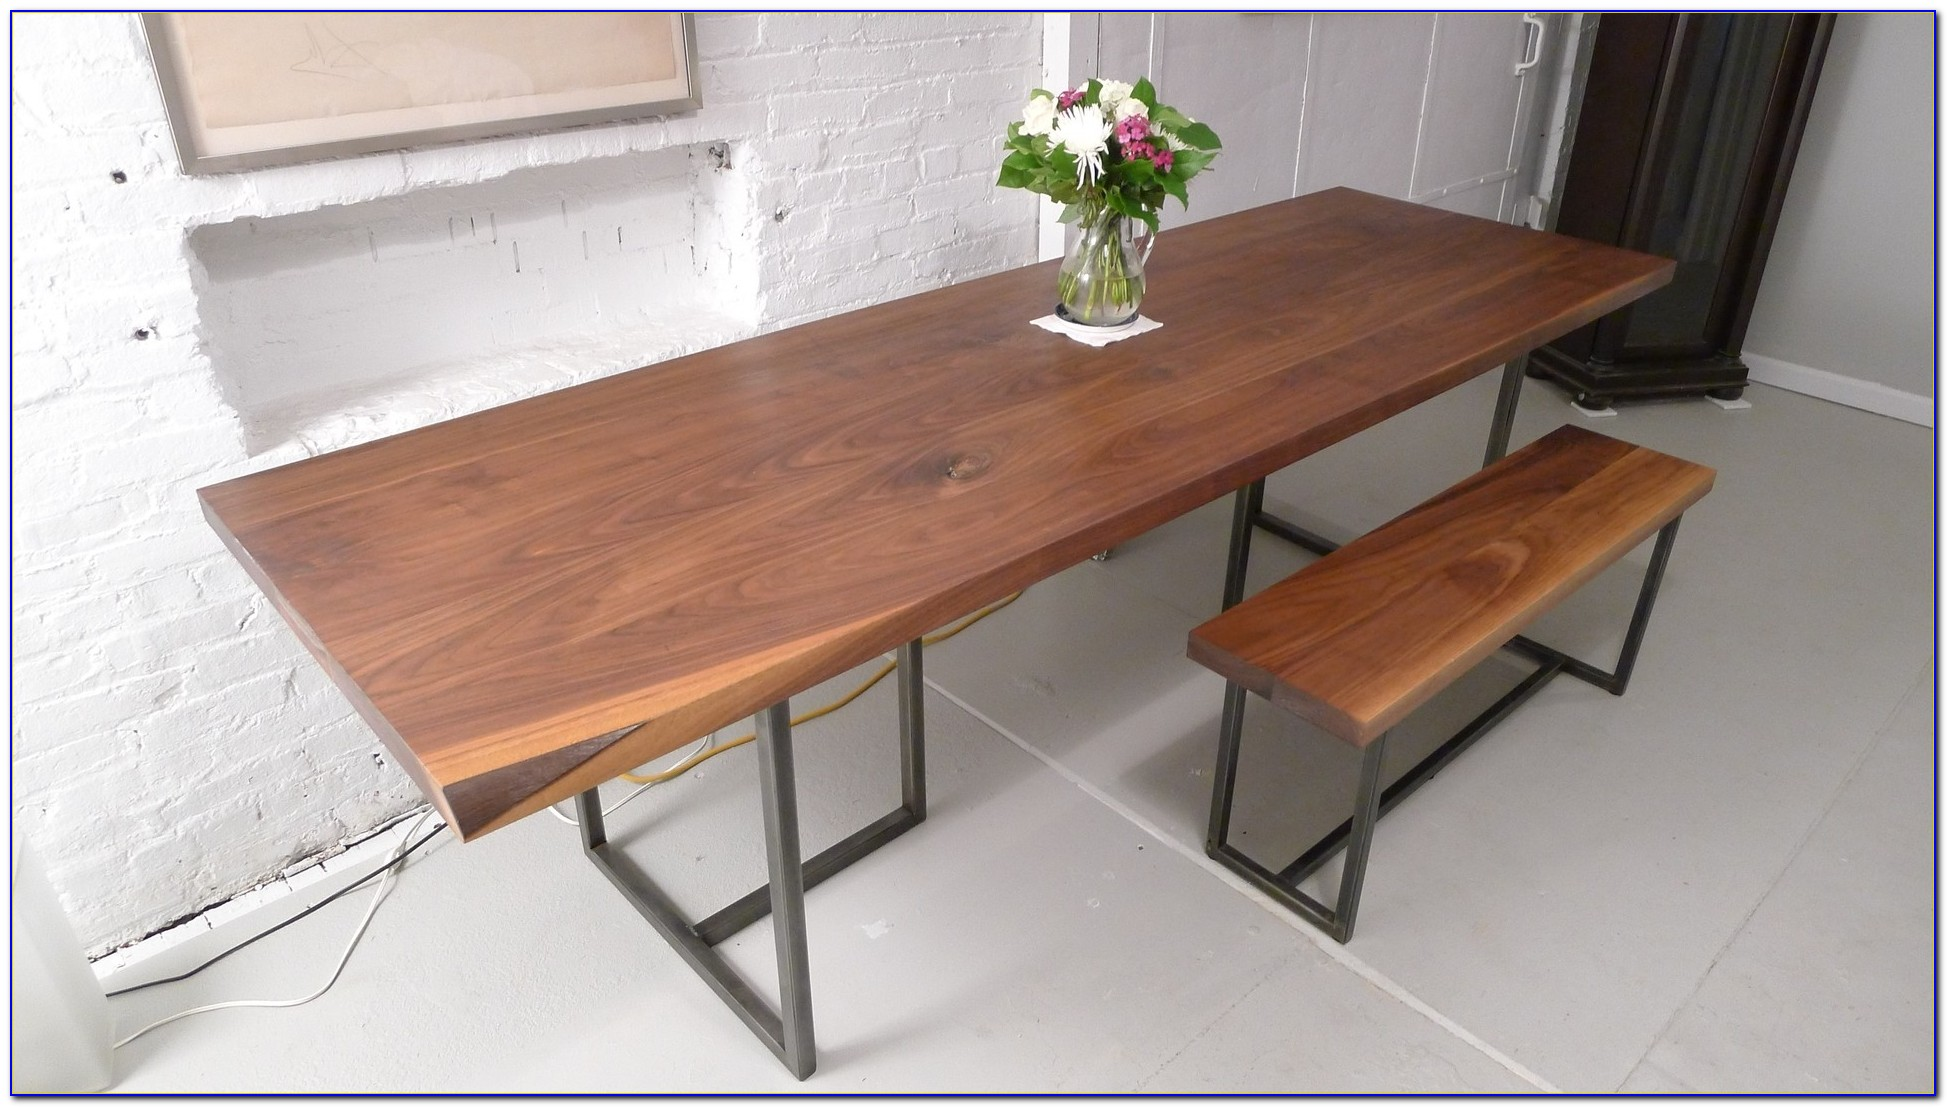 Island Bench With Dining Table Attached